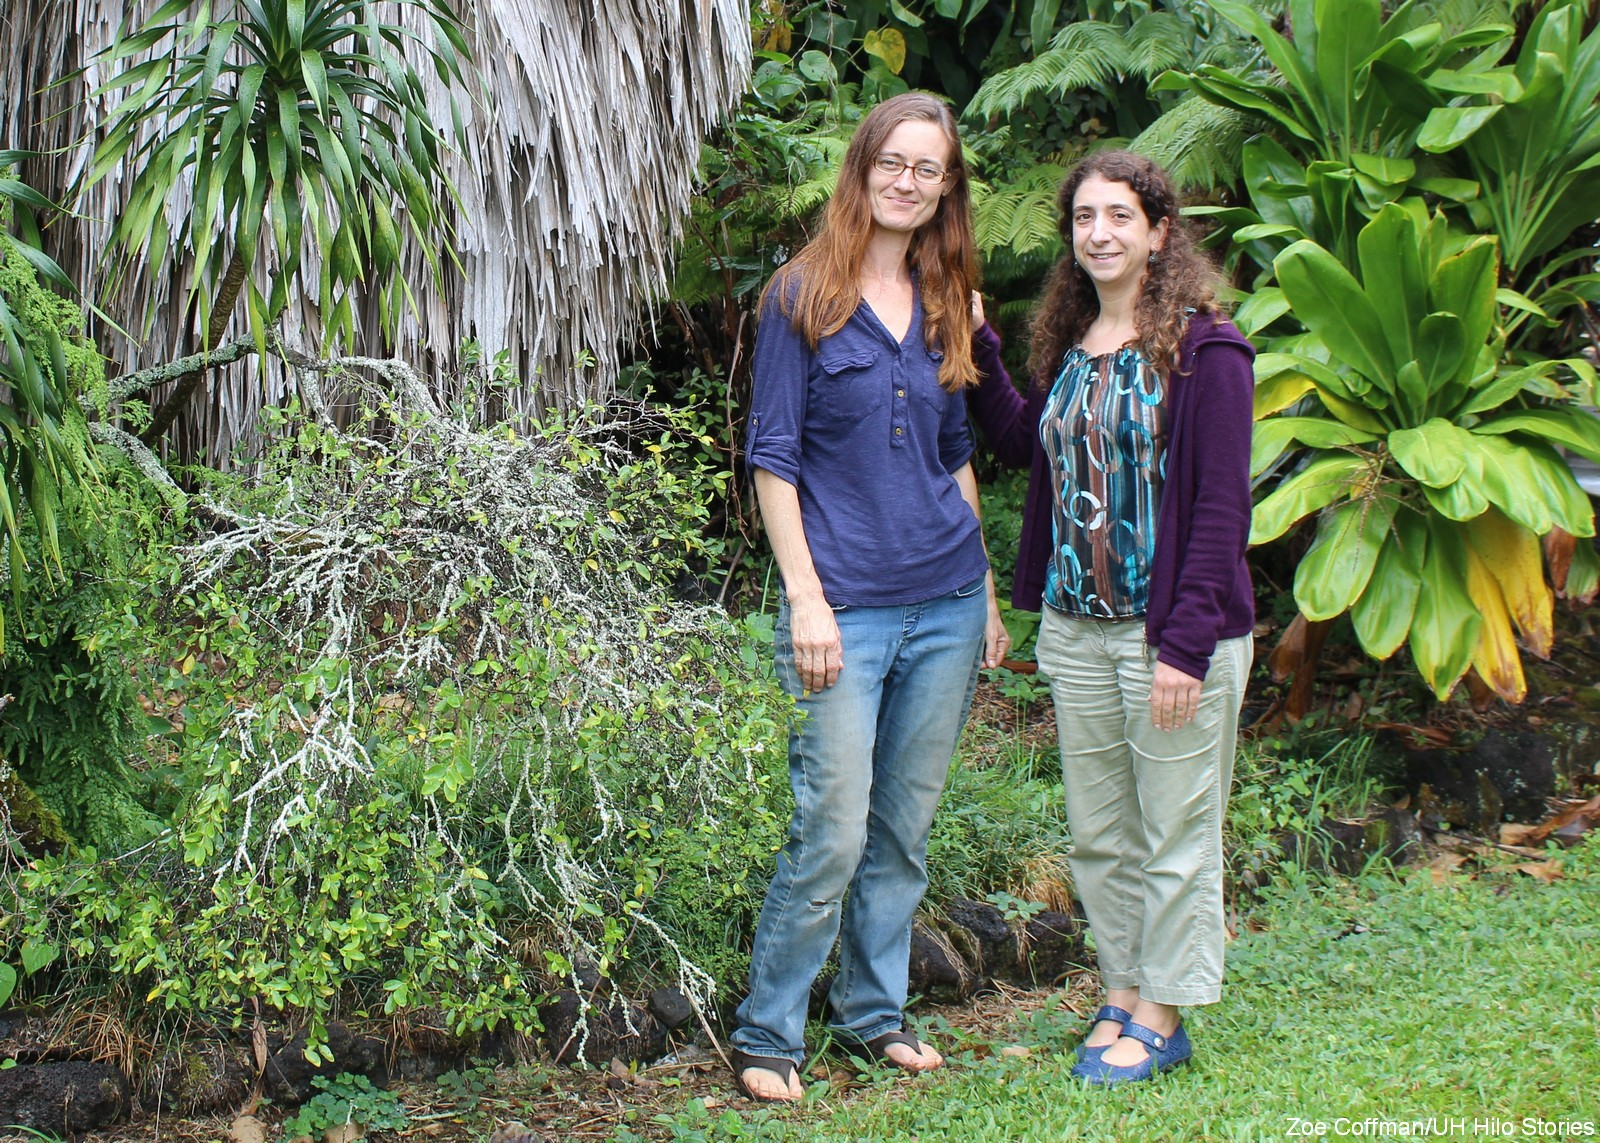 Joanna Norton and Prof. of Biology Becky Ostertag stand together in a garden.